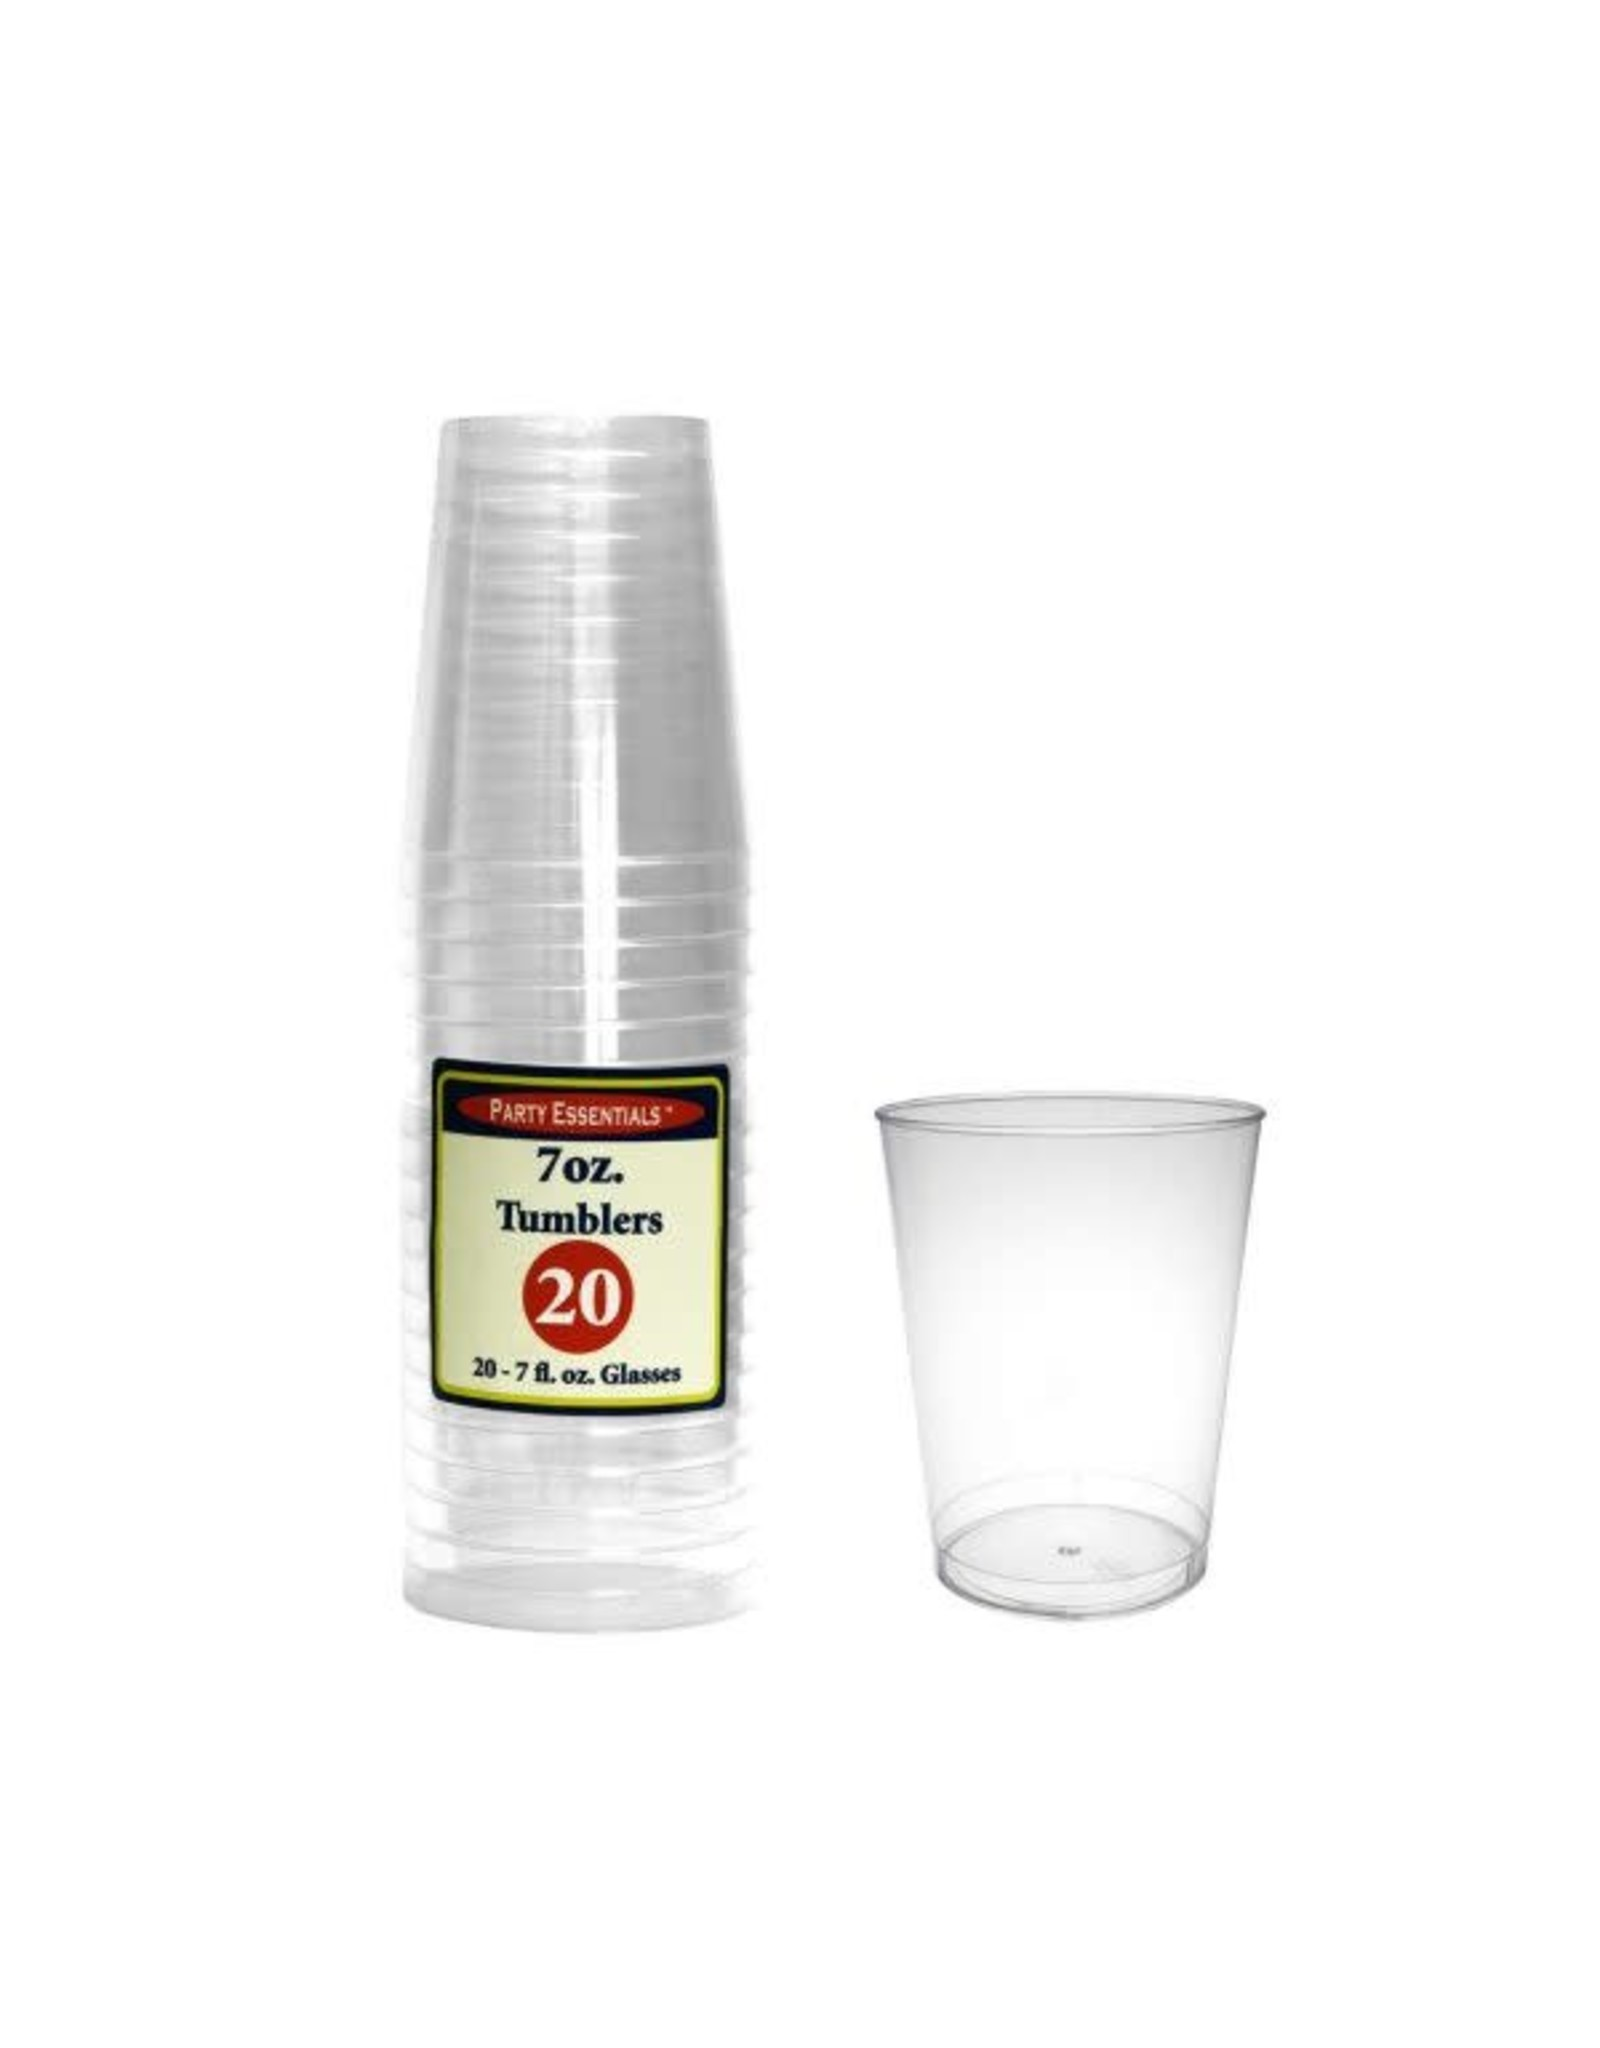 Party Essentials 7 oz. Tumblers Clear - 20 Ct.